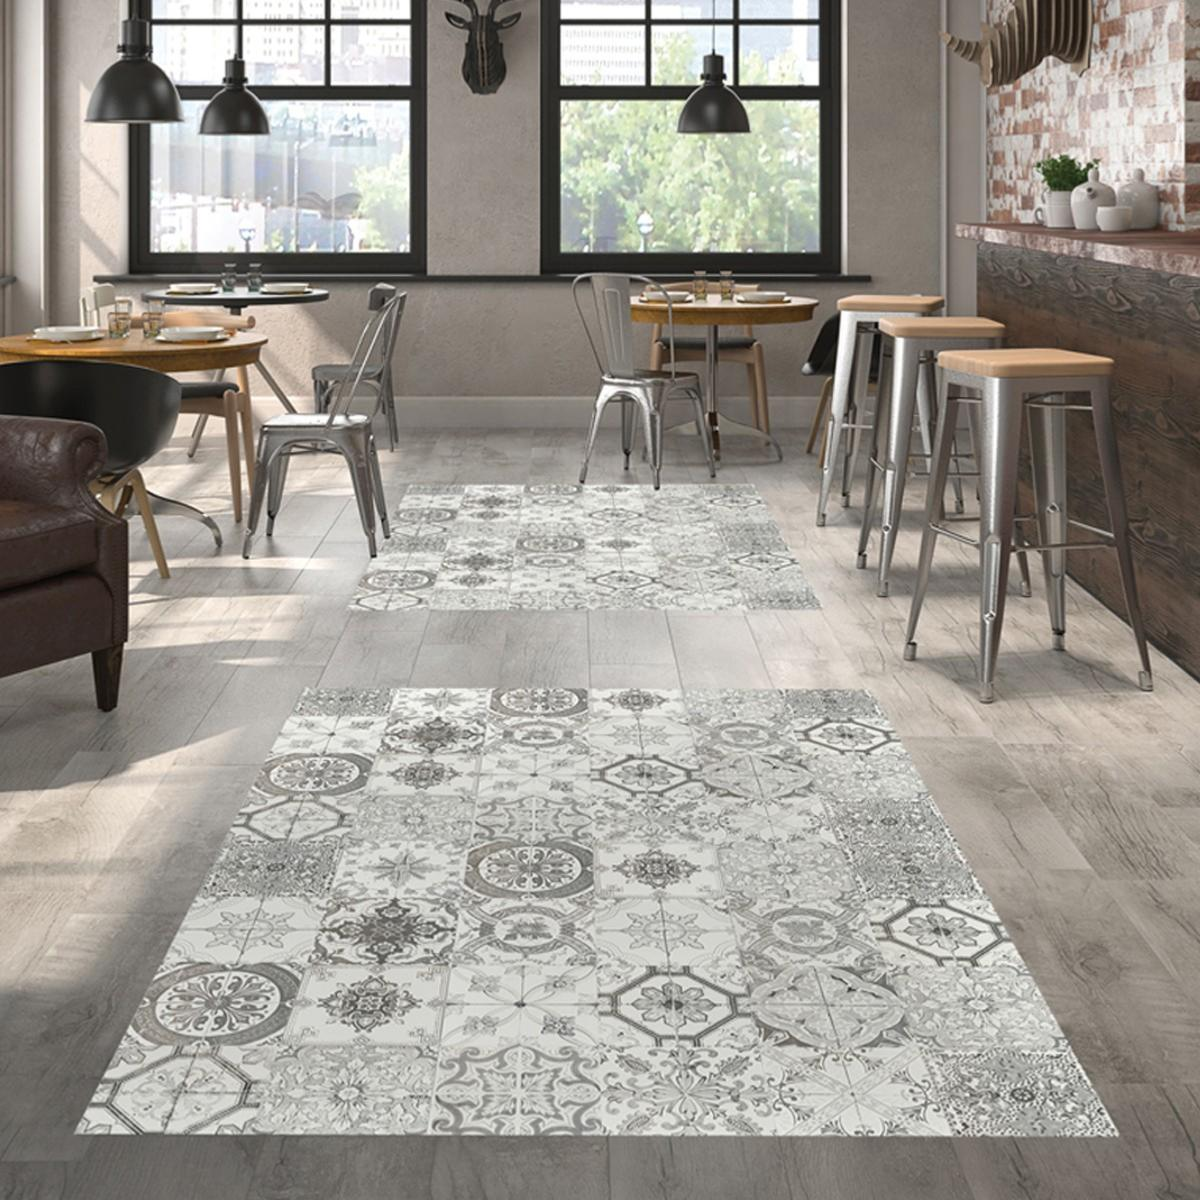 Victoria Grey Wall and Floor Tile 20x20cm | Tiles Ahead